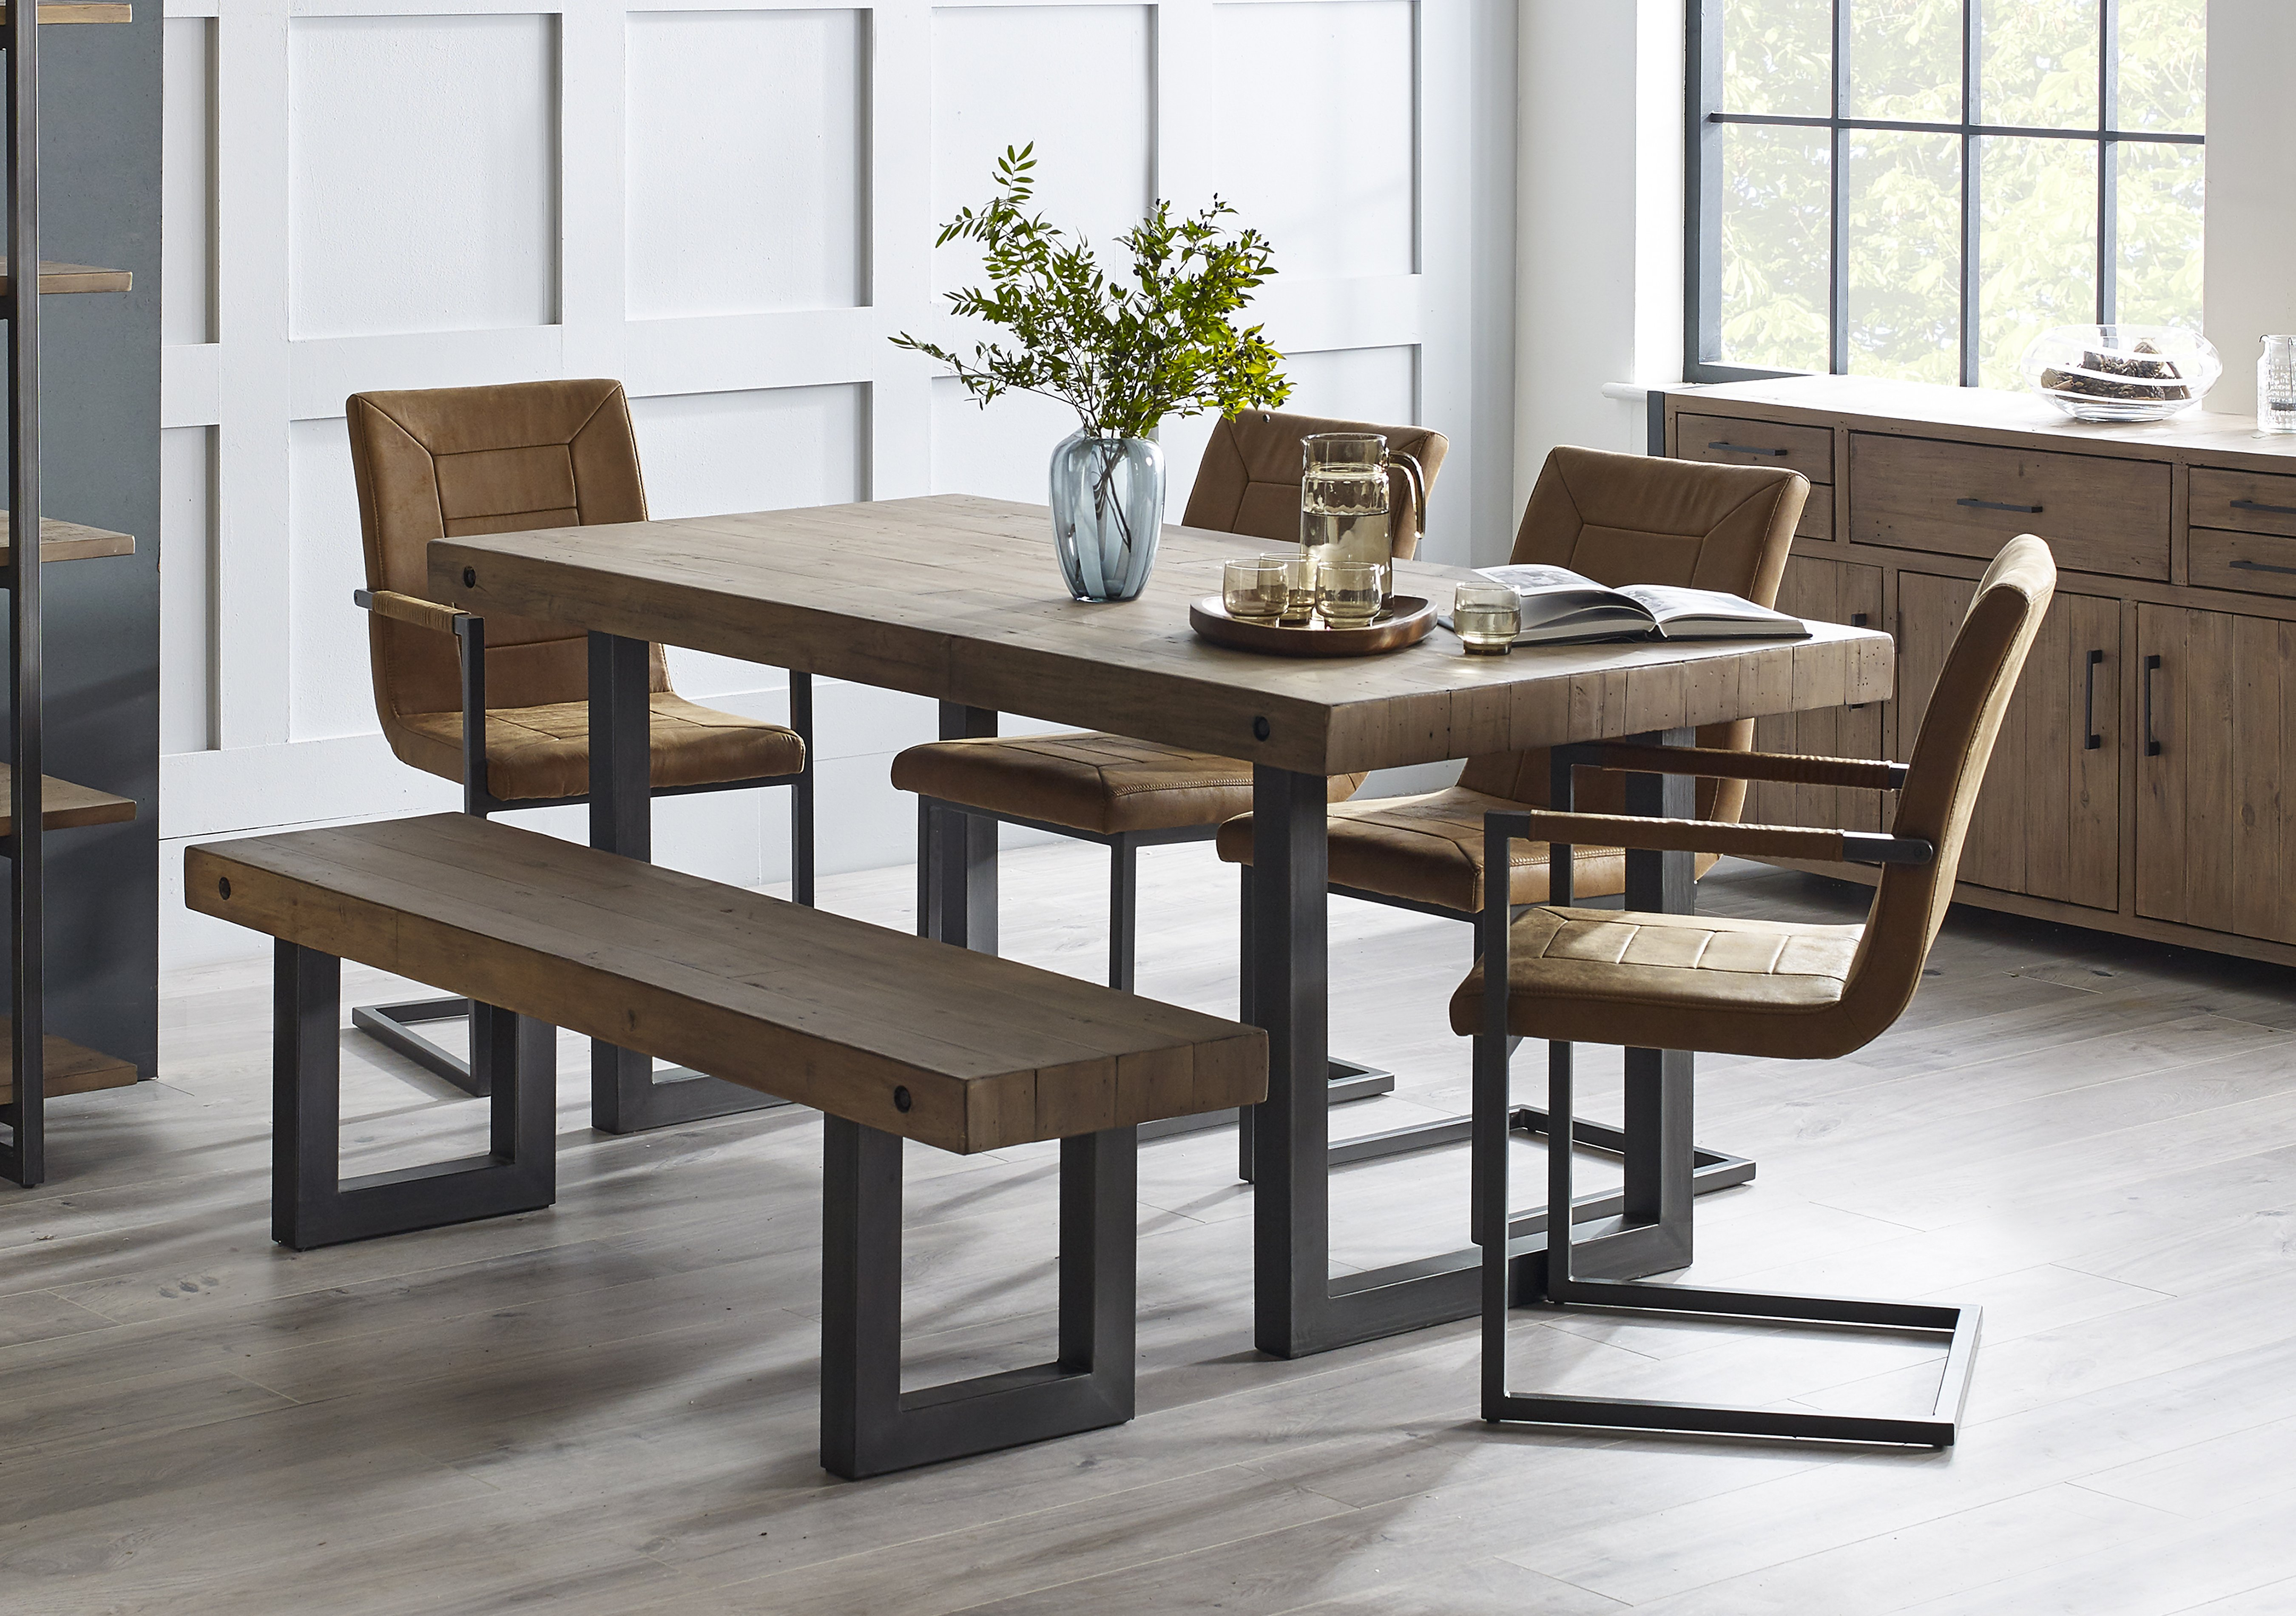 Shoreditch Dining Table Furniture Village